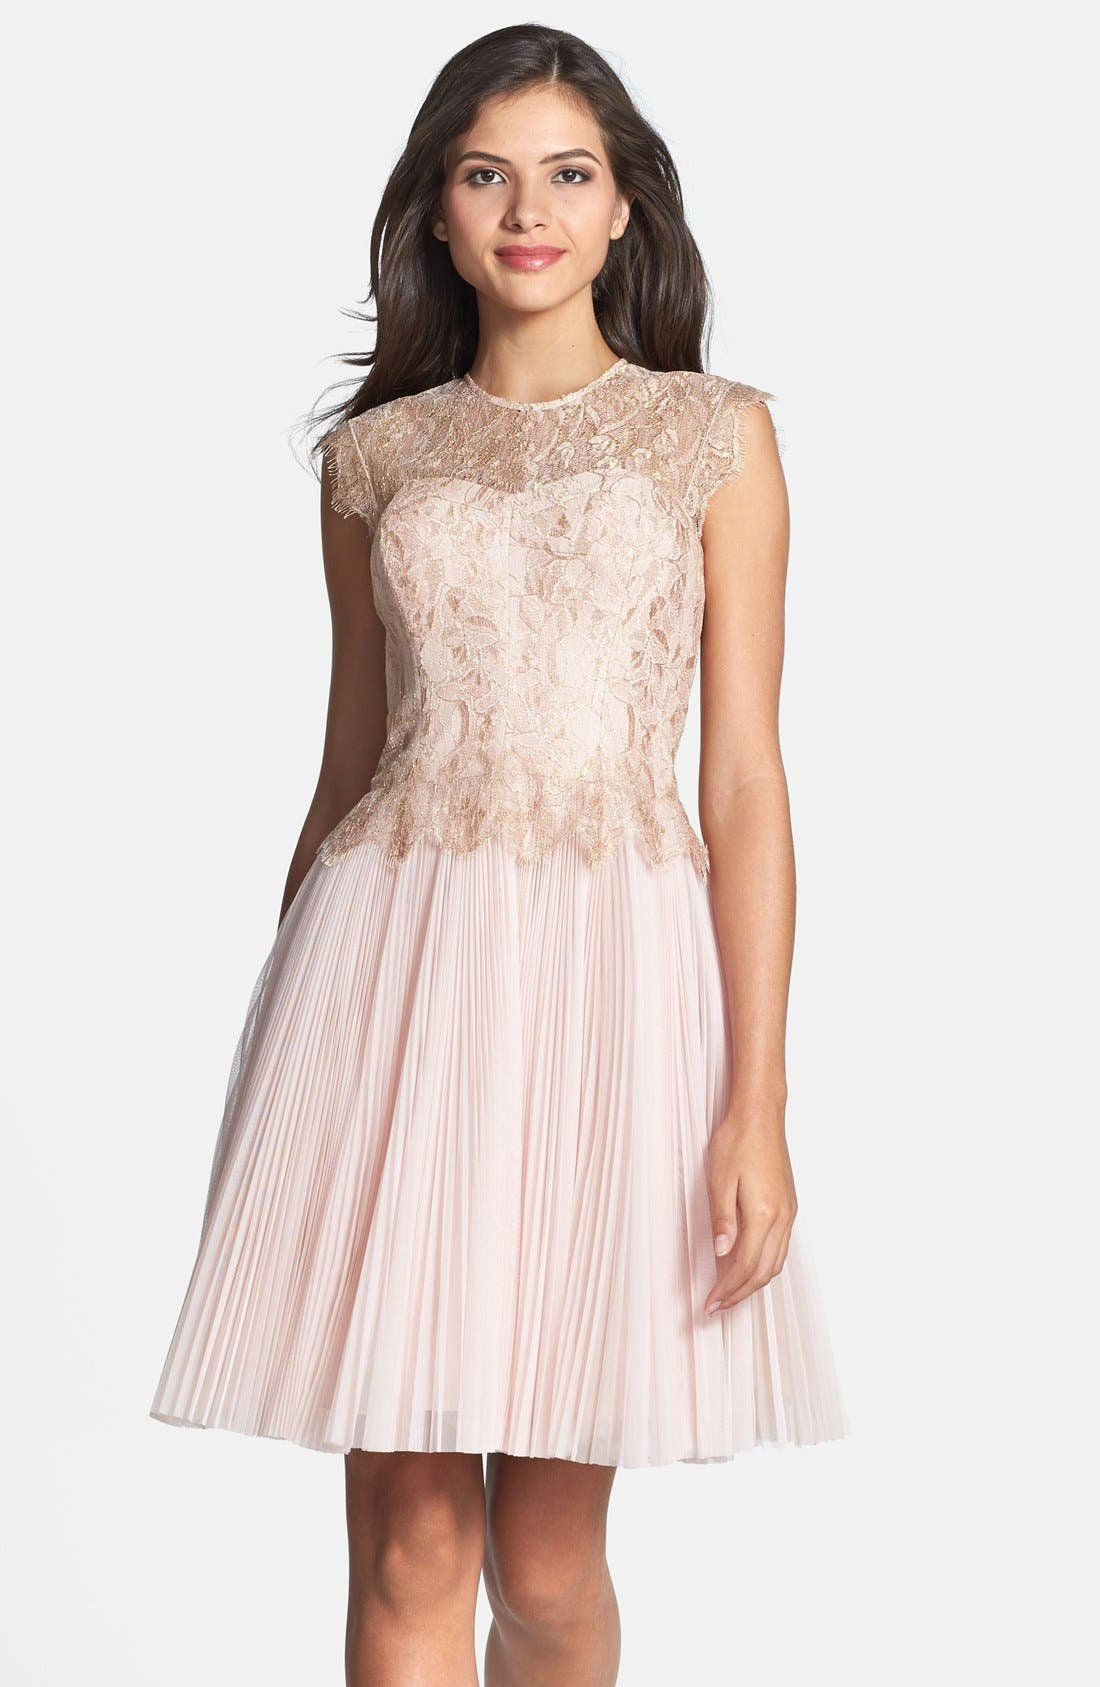 'Remma' Metallic Lace Overlay Fit & Flare Dress,                         Main,                         color, Nude Pink